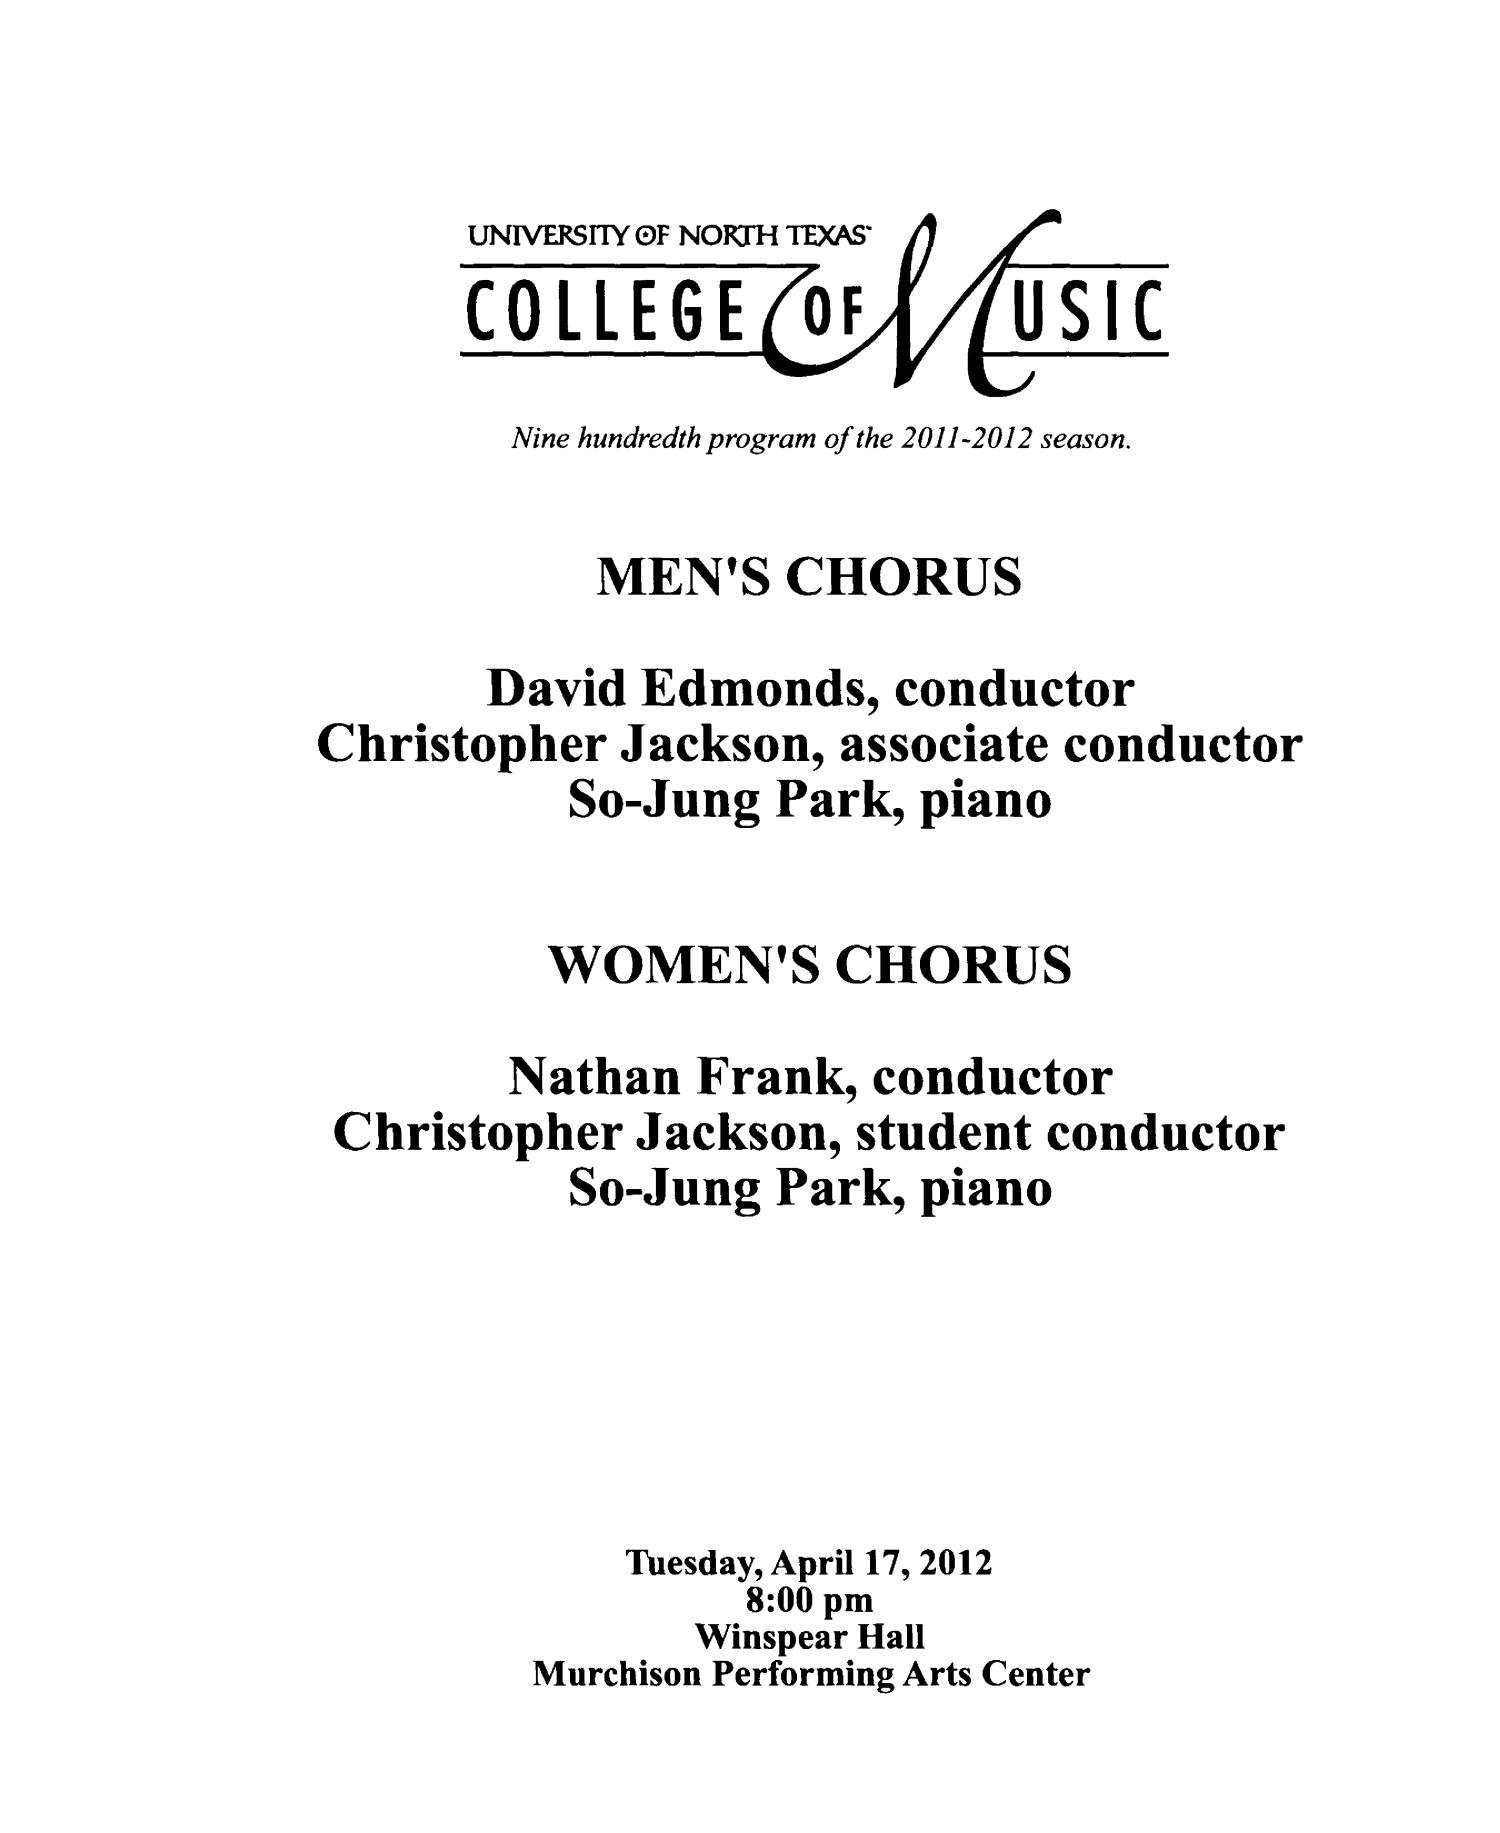 College of Music Program Book 2011-2012: Ensemble & Other Performances, Volume 3                                                                                                      330